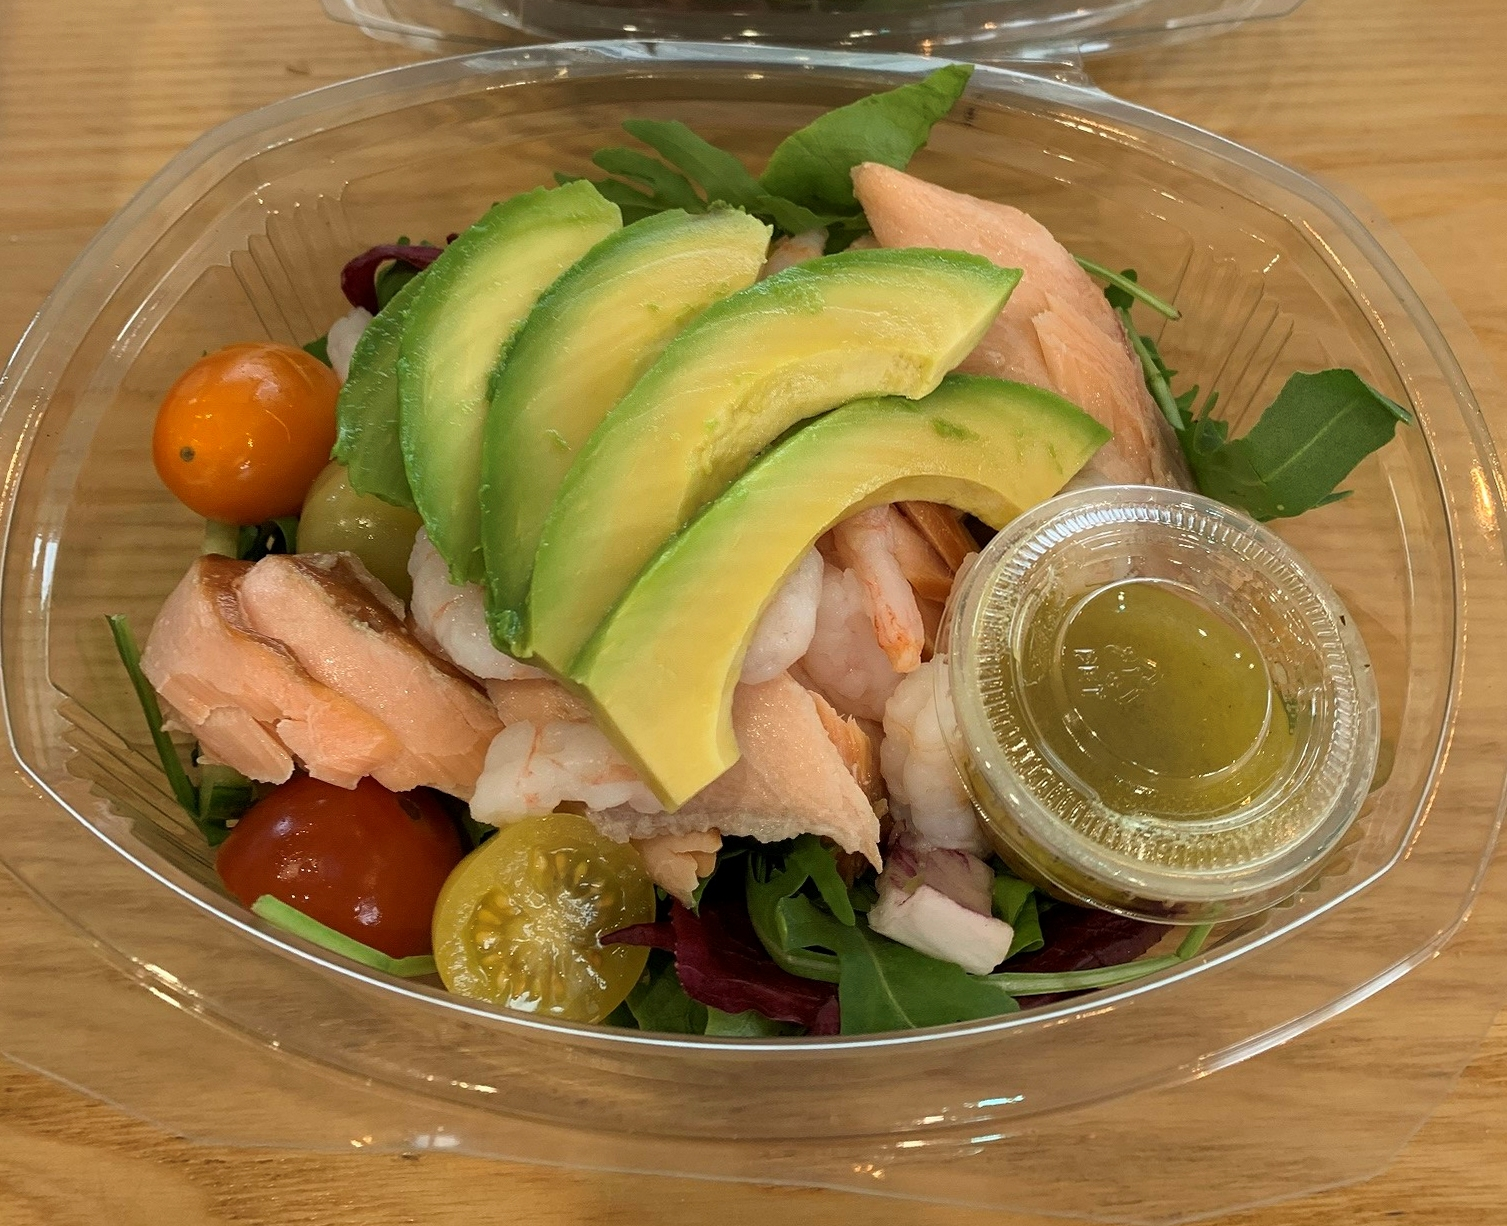 Hot Smoked Salmon, Prawn & Avocado Salad with Lemon & Dill Dressing for 1